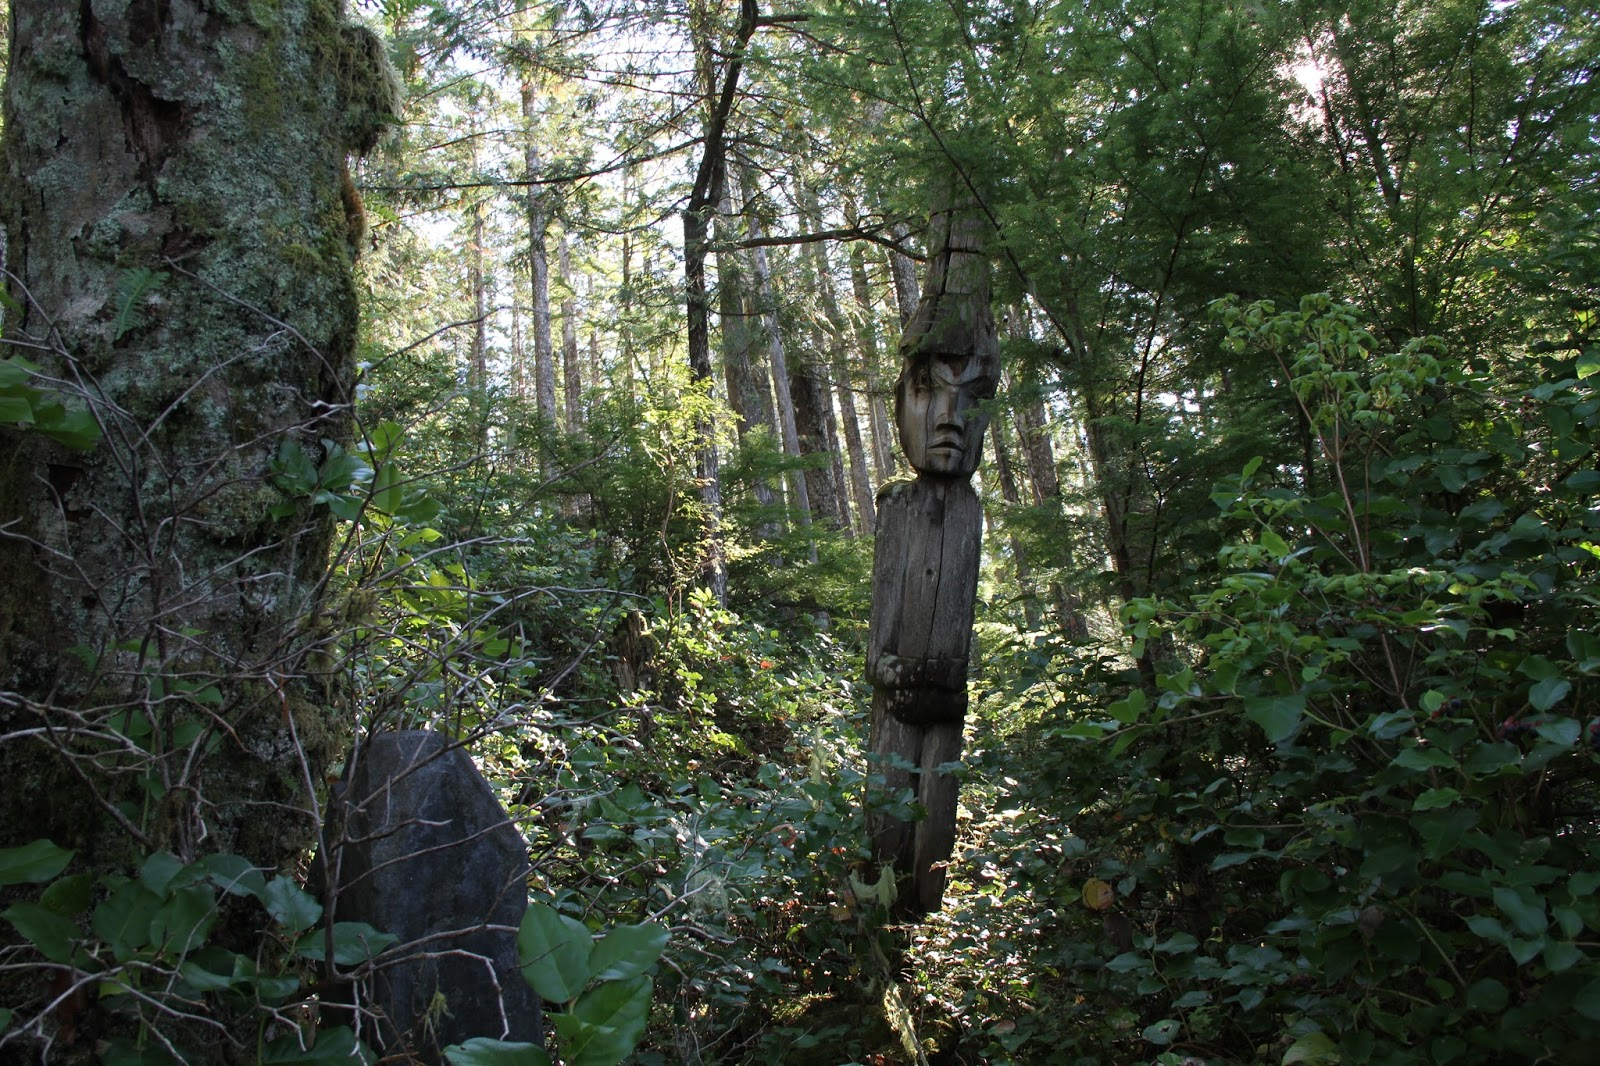 At first we didn't see it and then it revealed itself through the salal and trees...